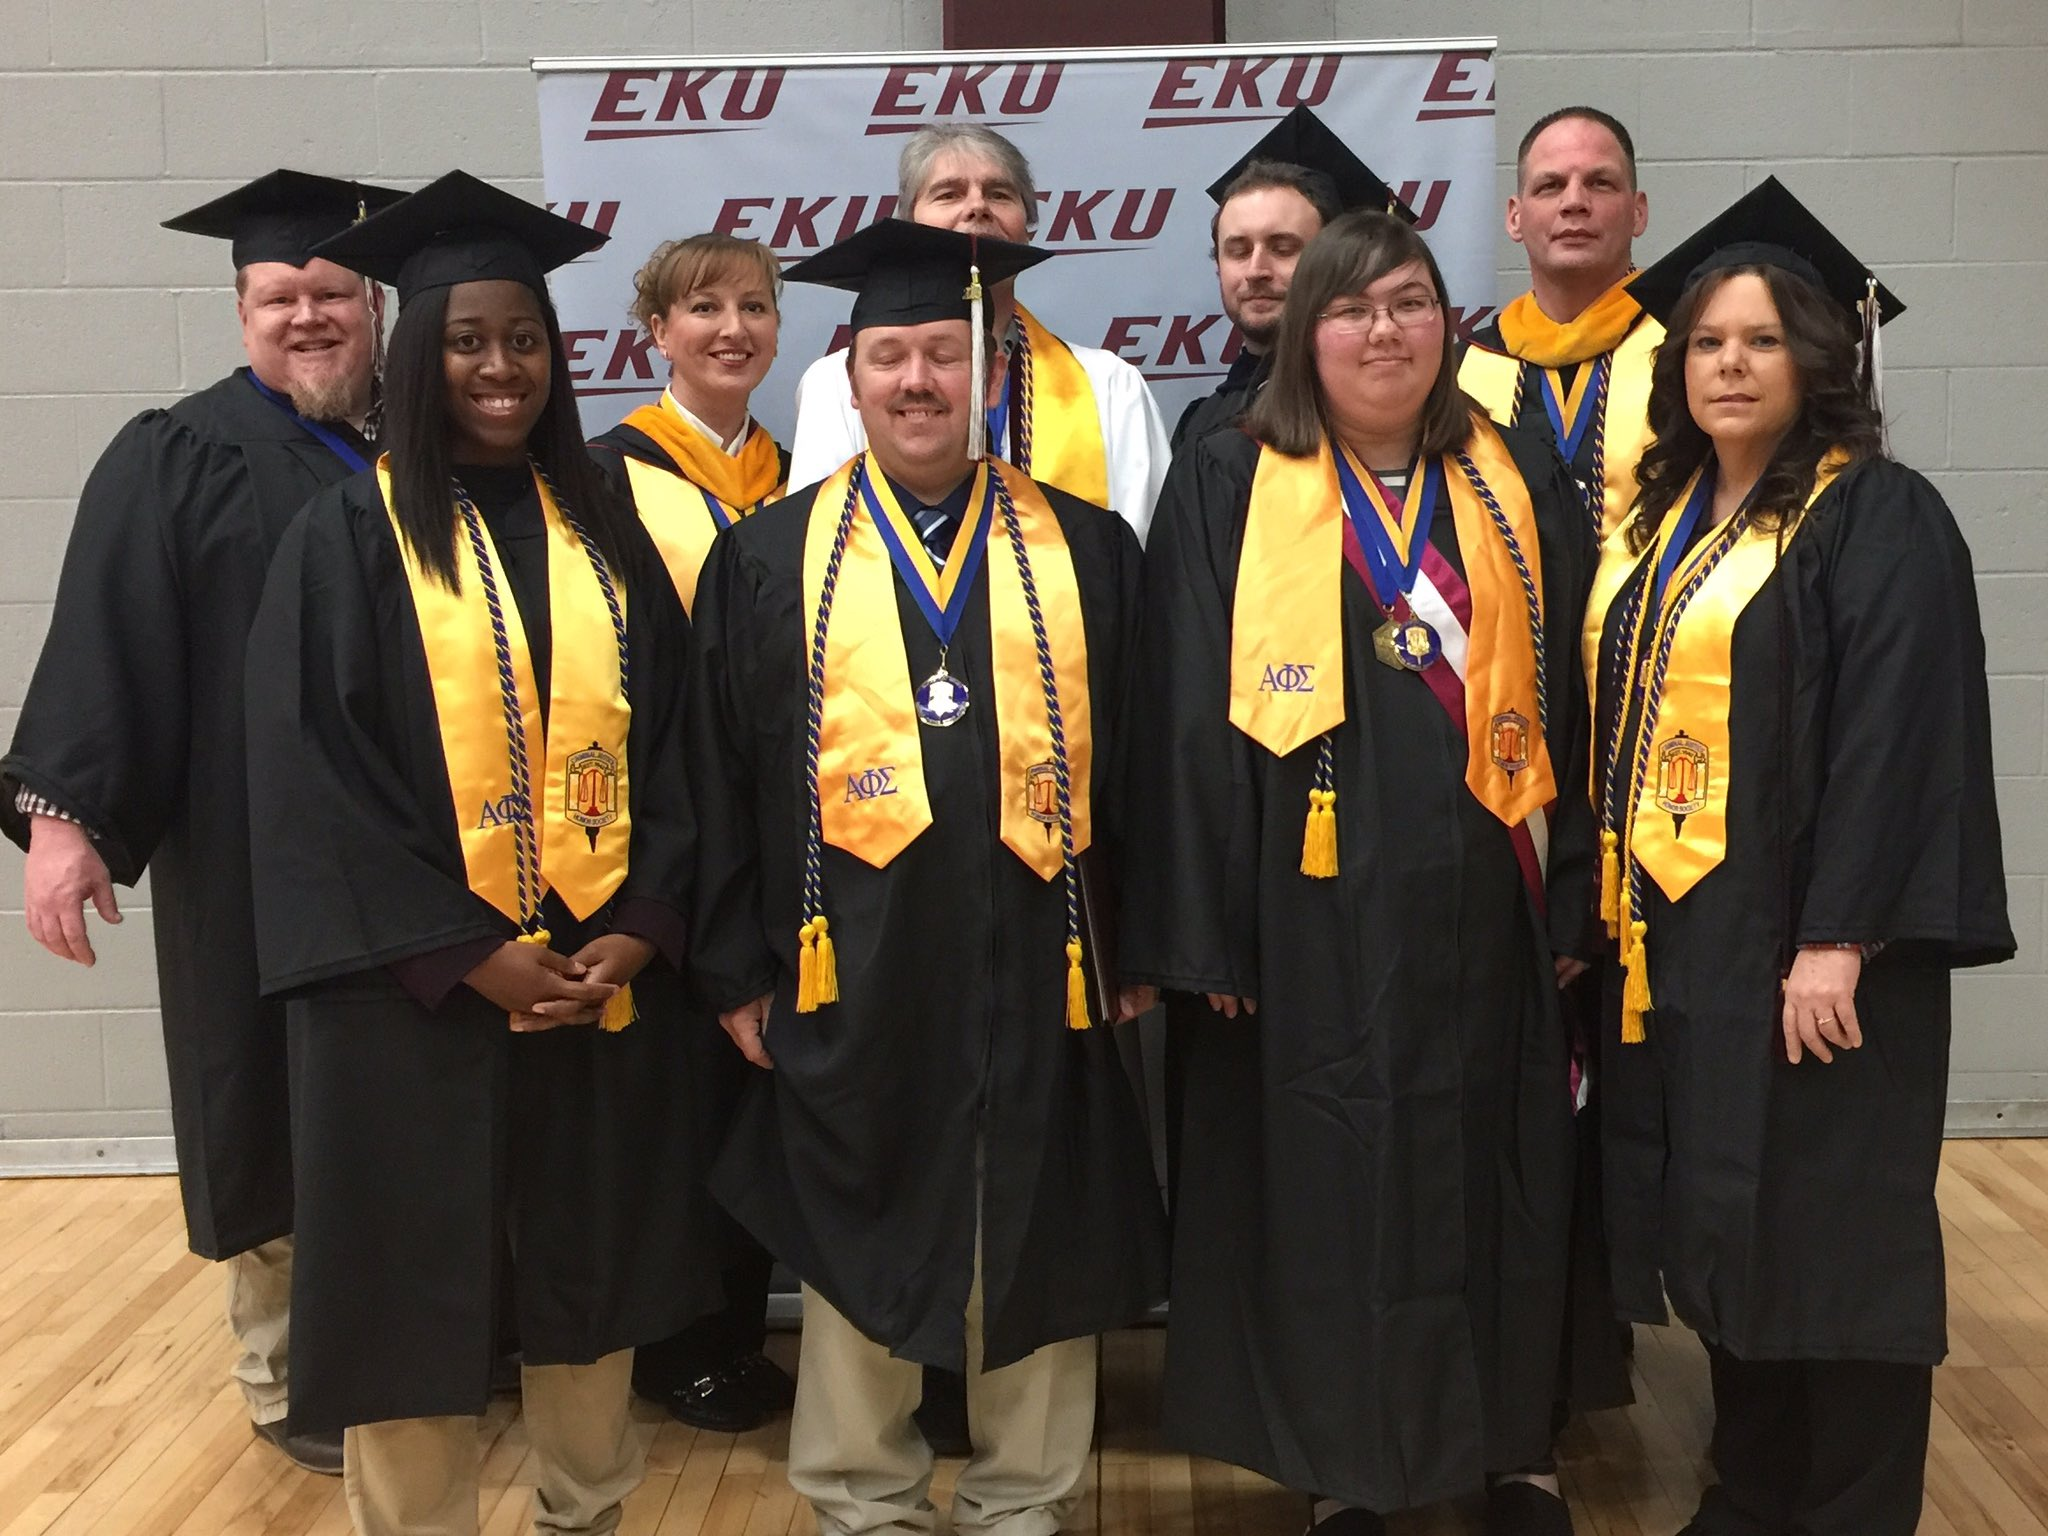 Some of our 28 #EKU #EKUGrad students from the Regional Campuses & Sites. Congratulations on your achievements! #fall2016 https://t.co/1KfPGlgrIB